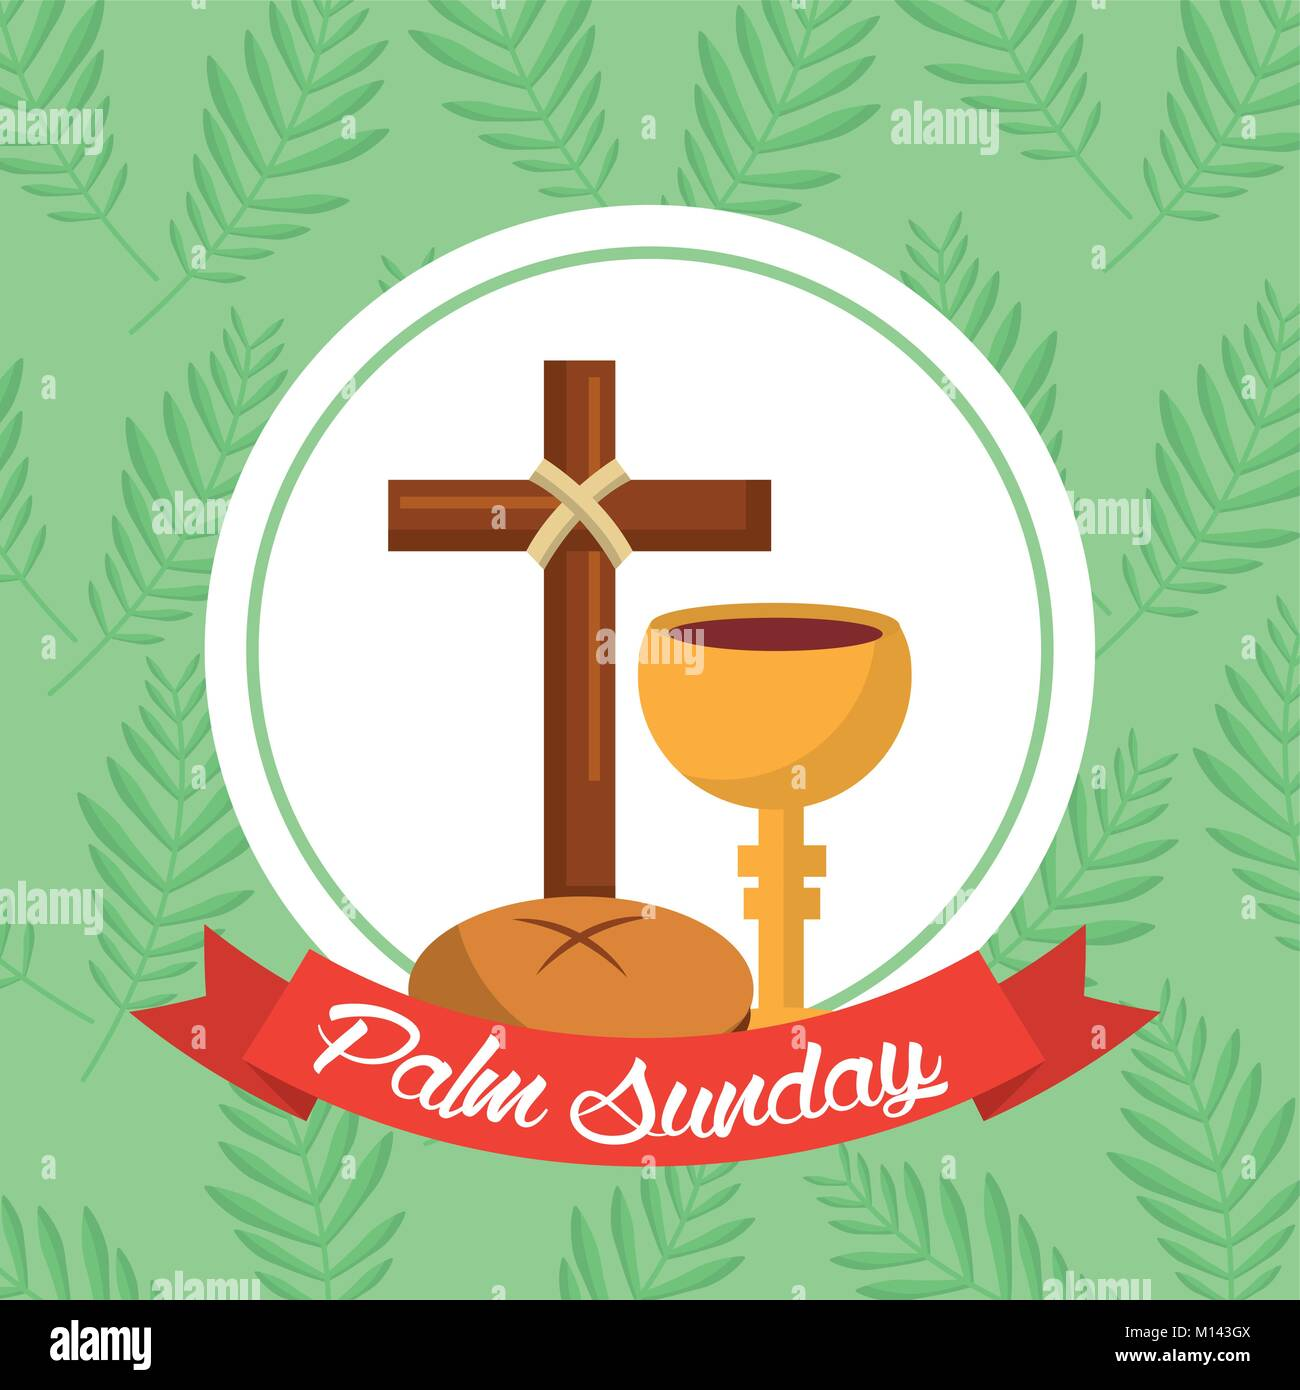 palm sunday bread cross cup ribbon green background - Stock Vector